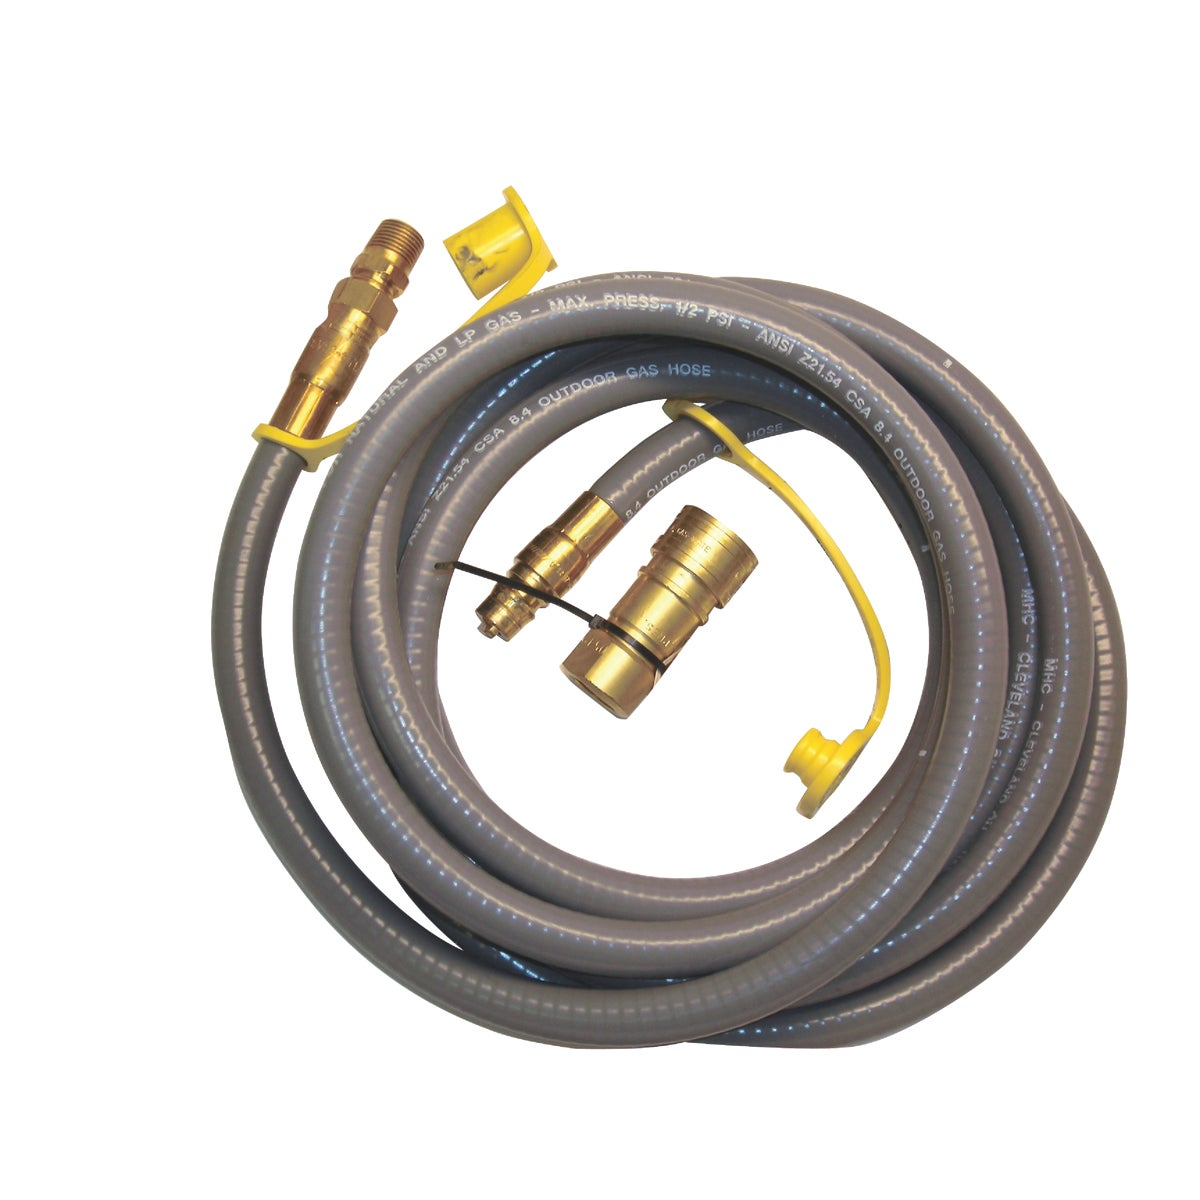 Mr. Heater 12 Foot Natural Gas and Propane Gas Hose Assembly 3/8 Inch Female ...